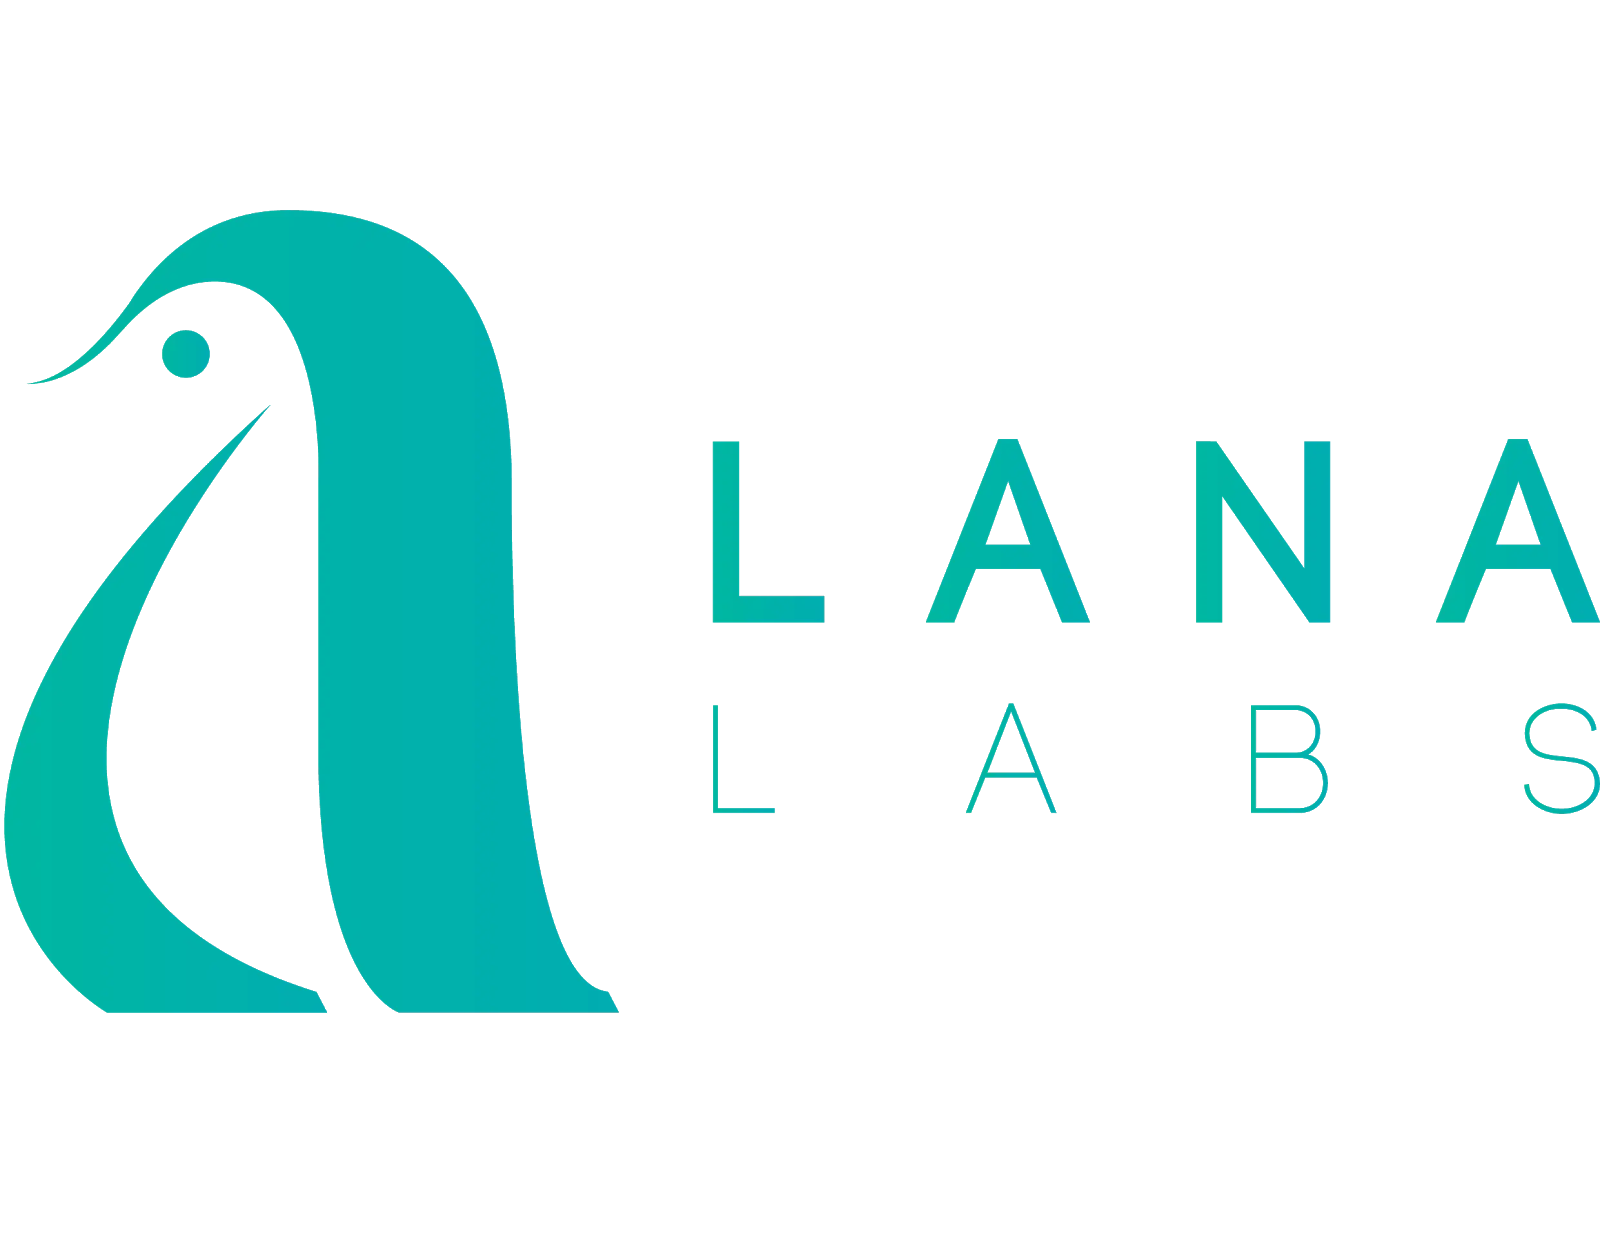 Company logo for Lana Labs process mining: a green penguin silhouette.